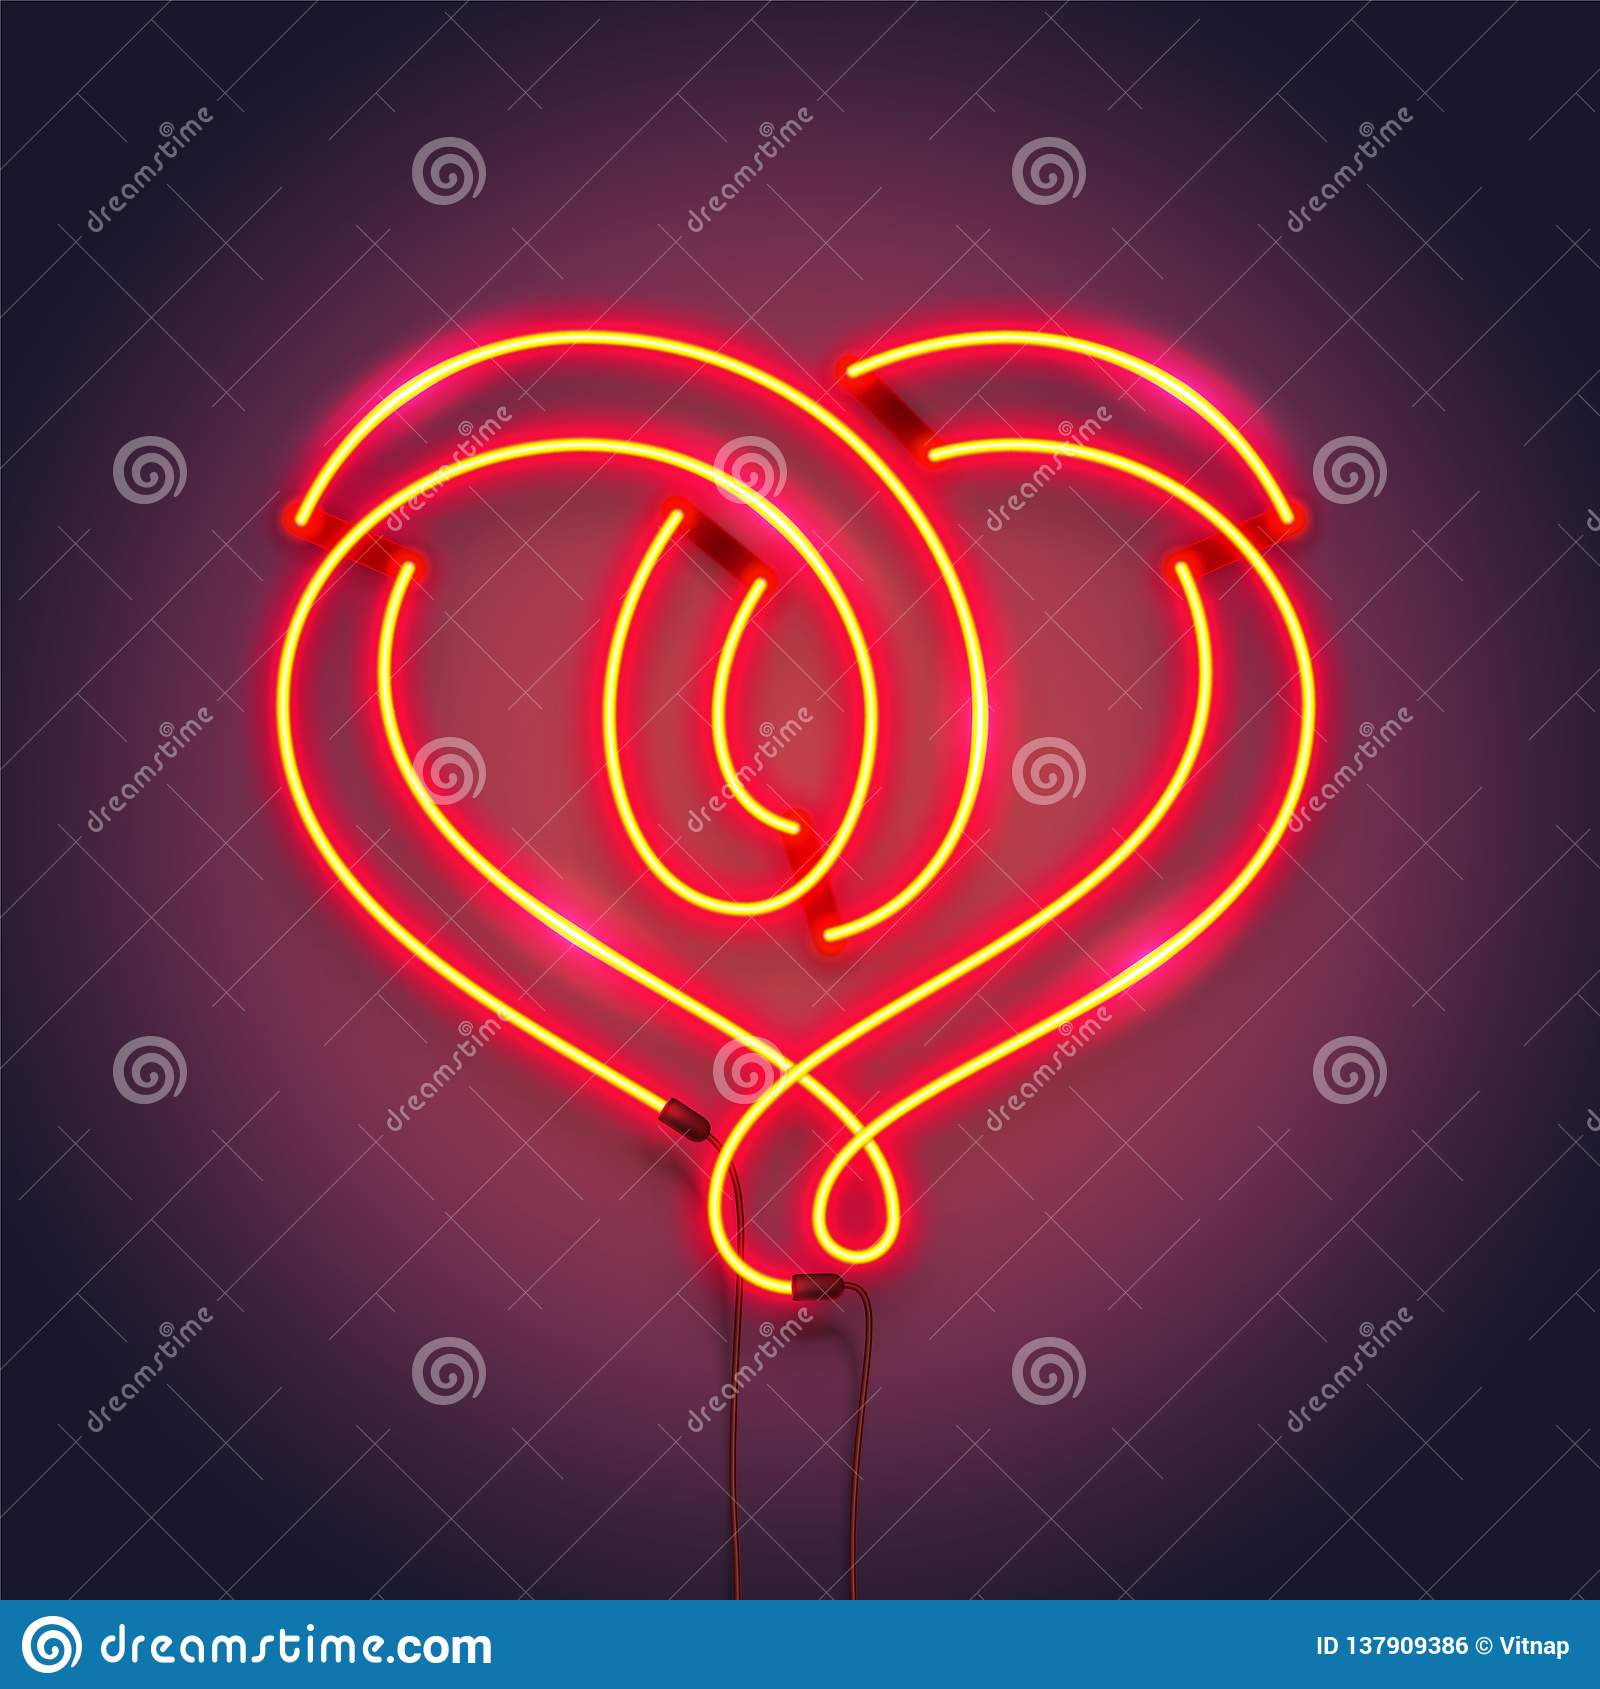 Heart symbol made of neon tubes. Romantic decoration design. Vector realistic illustration